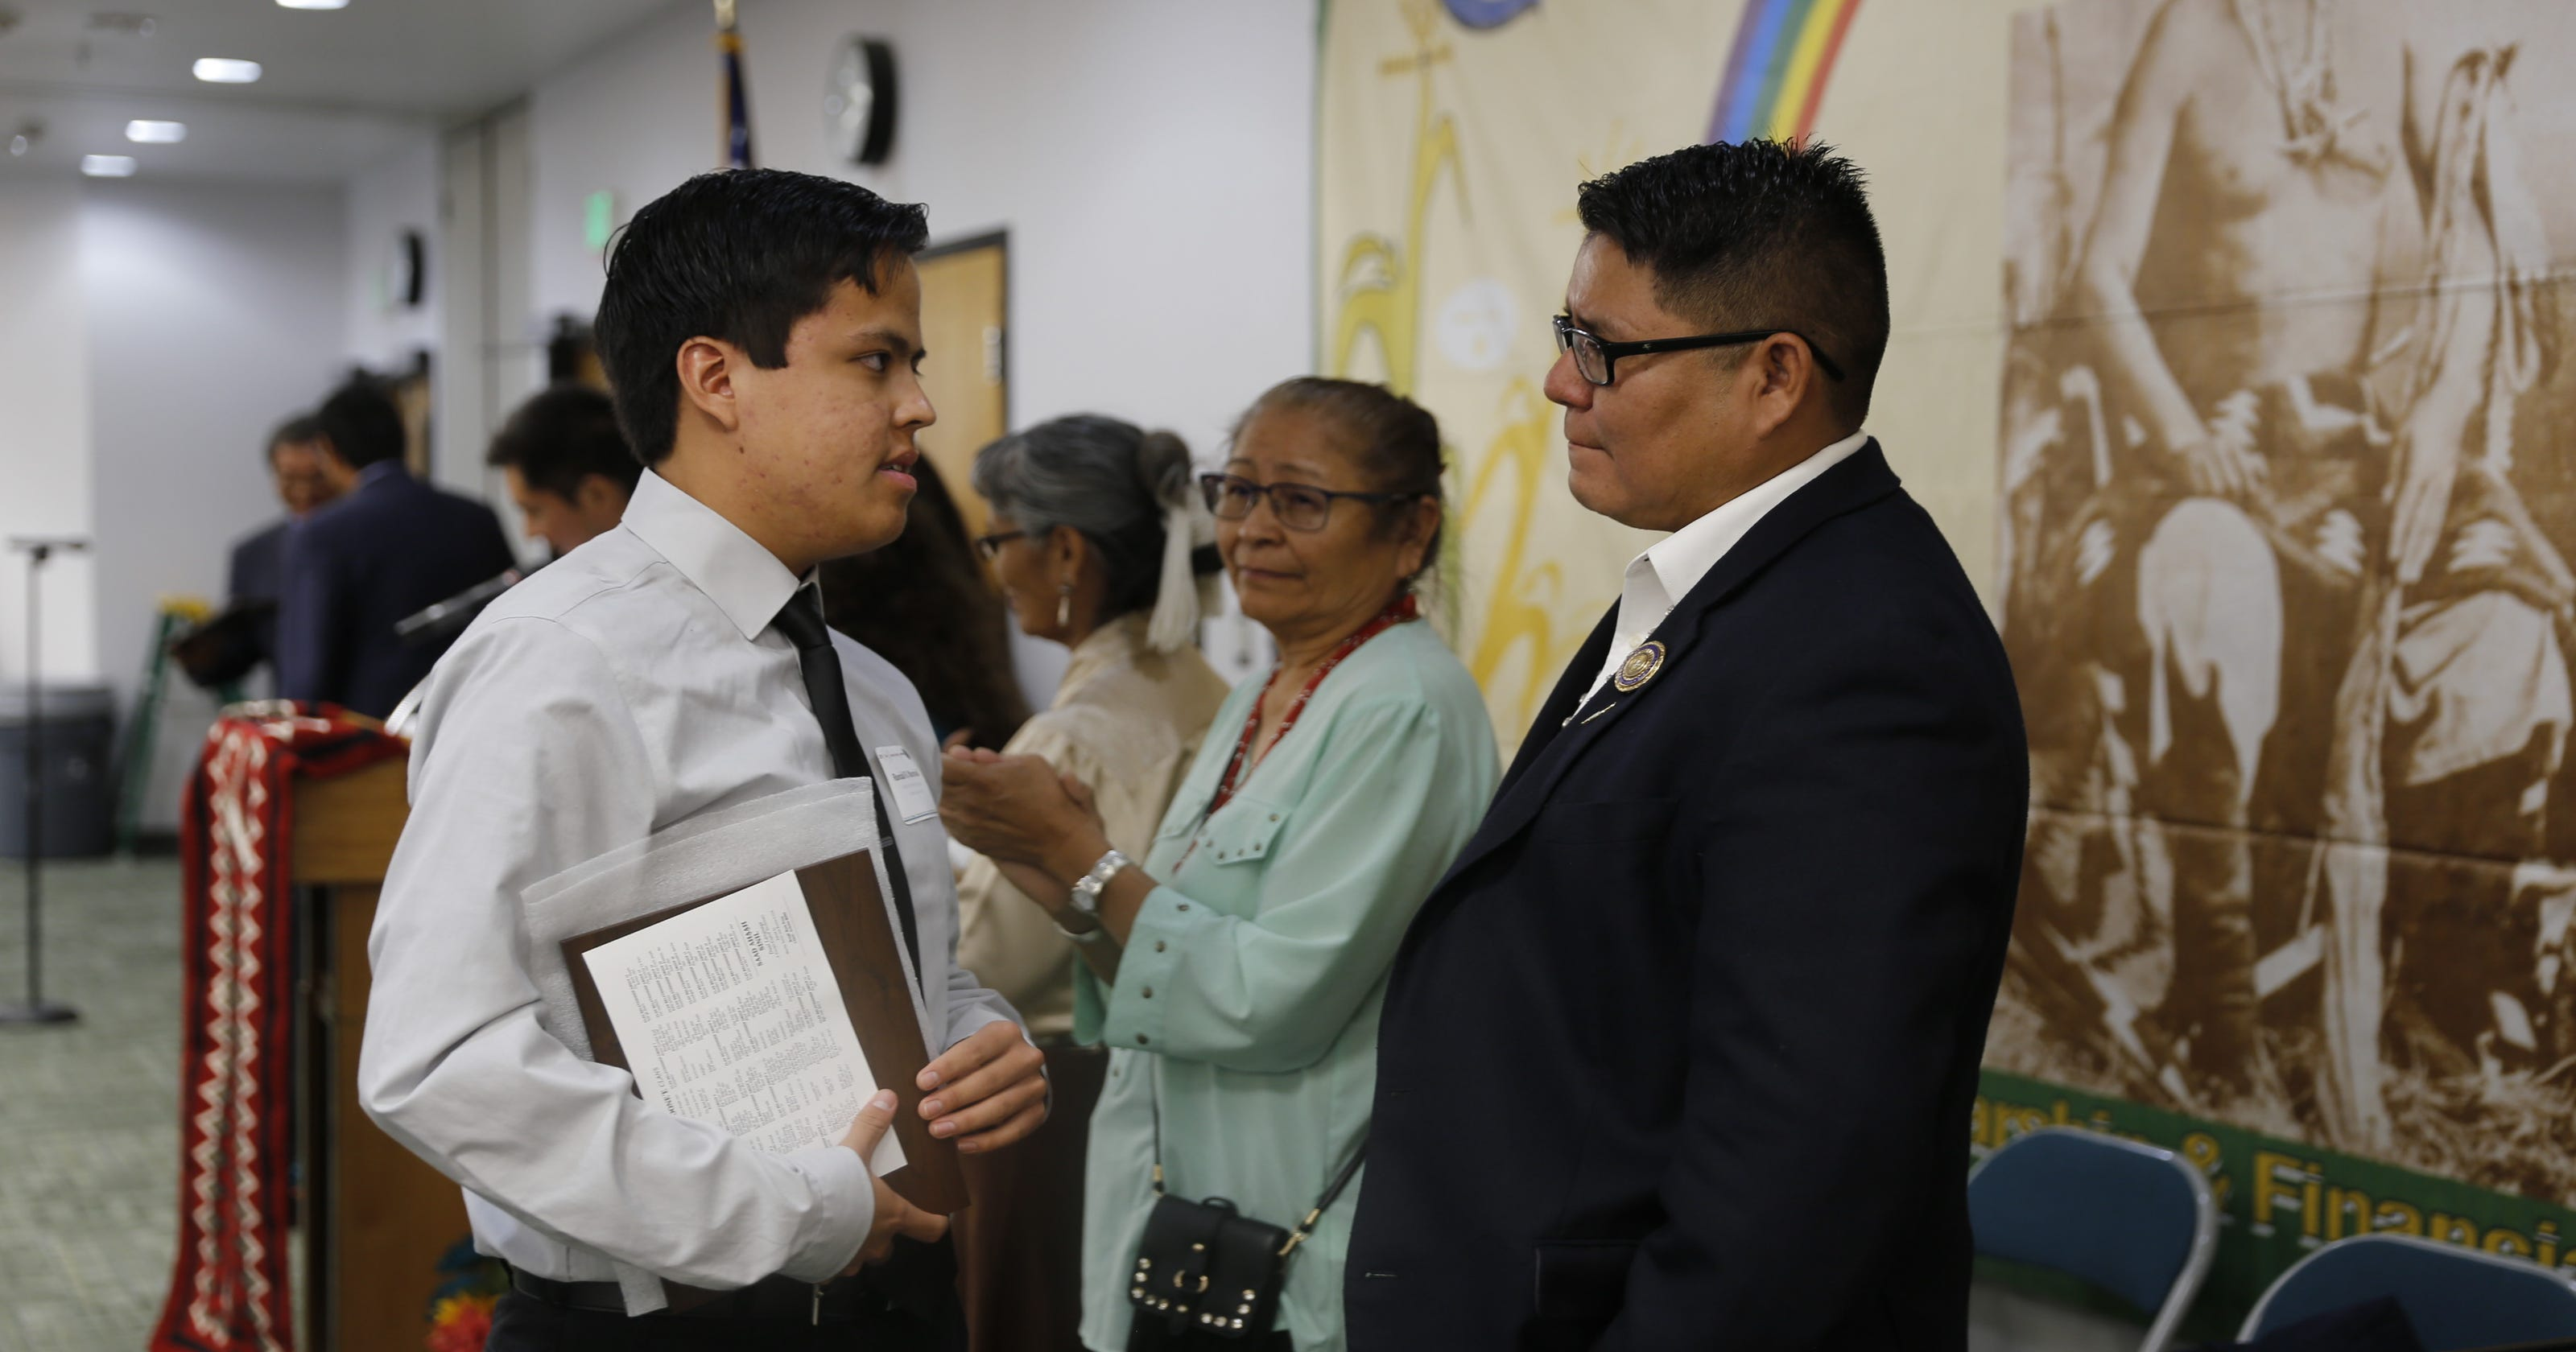 Chief Manuelito scholars honored in awards ceremony